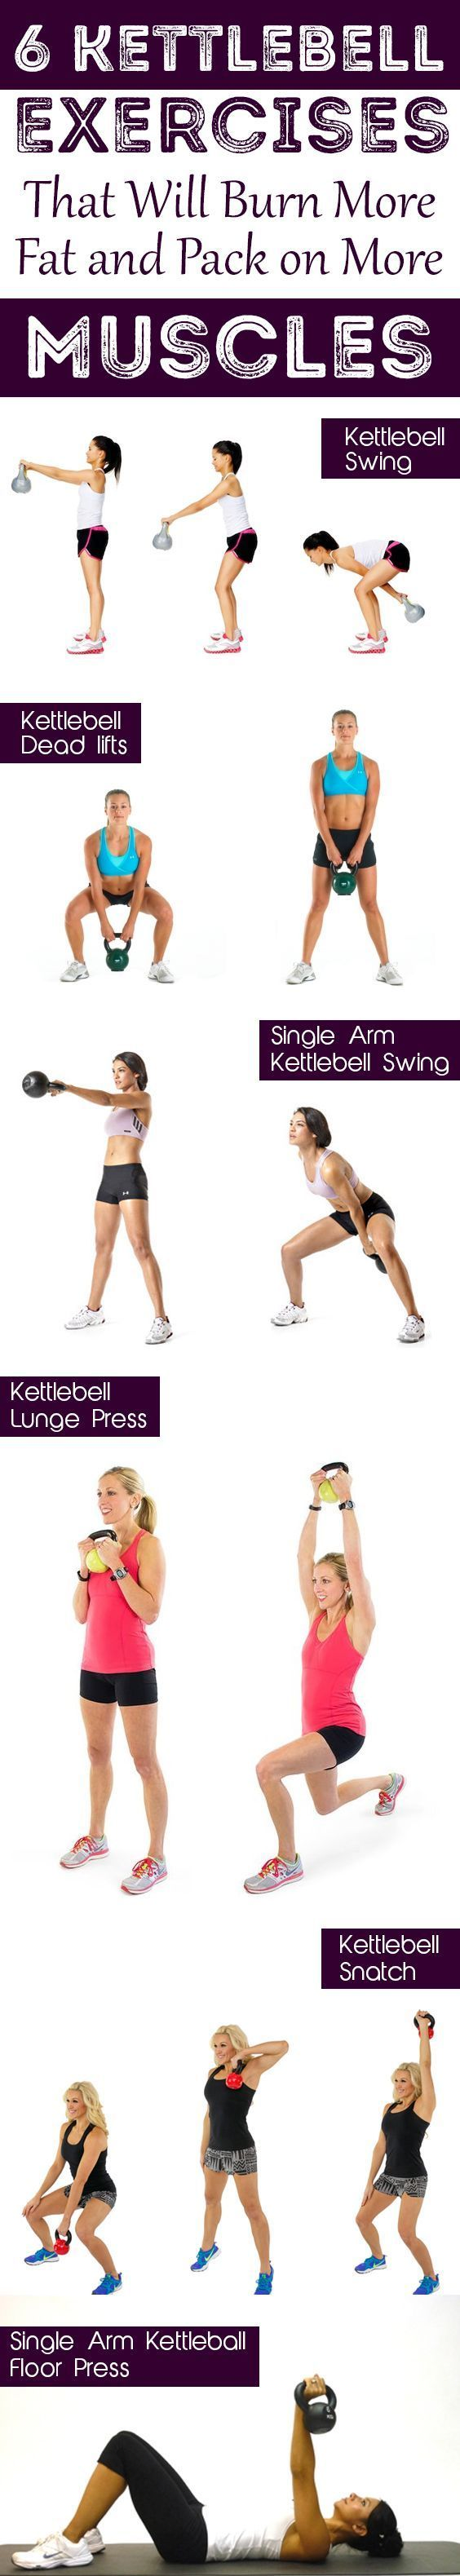 6 Kettlebell Exercises That Will Burn More Fat and Pack on More Muscles  Build strength, boost stamina, and blast fat with this kettlebell workouts #kettlebellworkout #kettlebell #wacceskettlebells